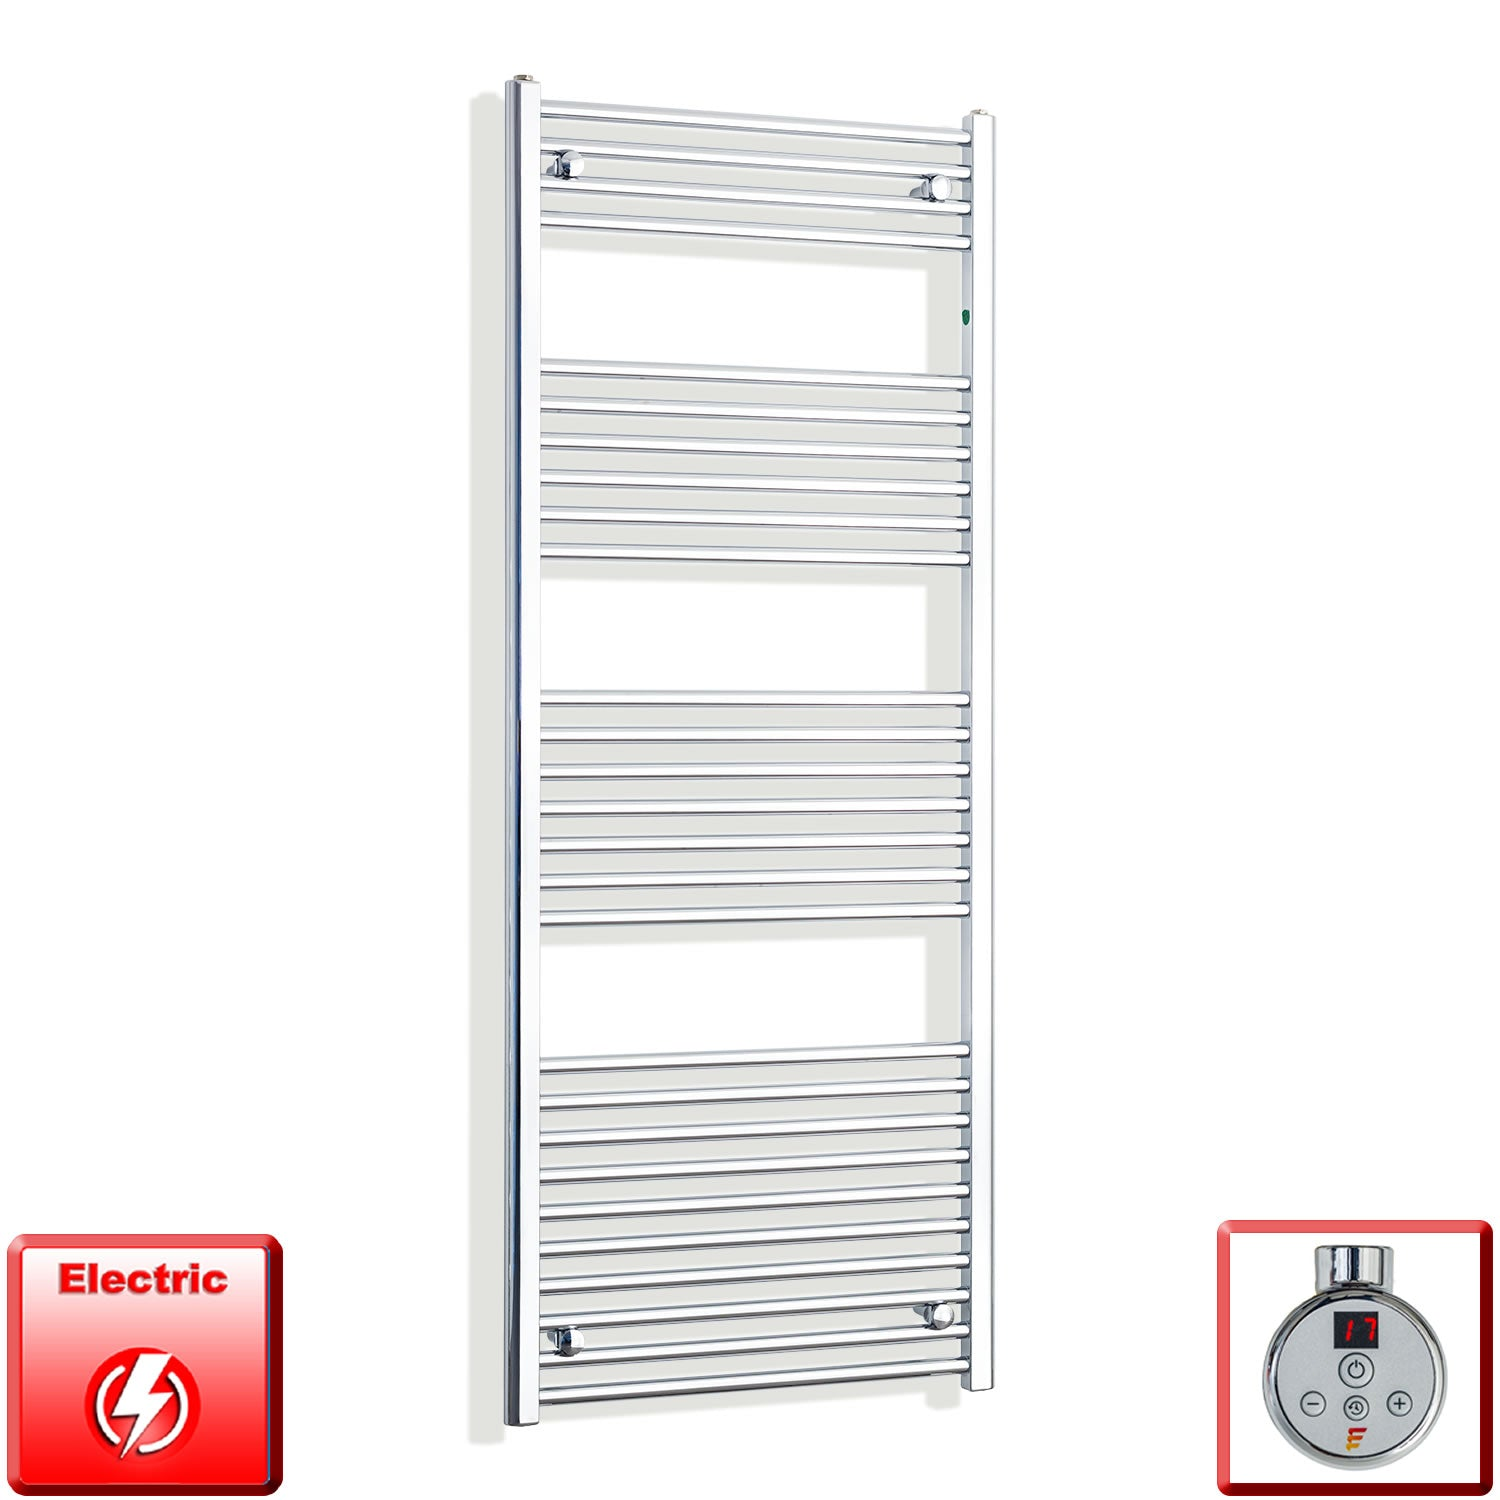 650mm Wide 1600mm High Pre-Filled Chrome Electric Towel Rail Radiator With Thermostatic DIGI Element